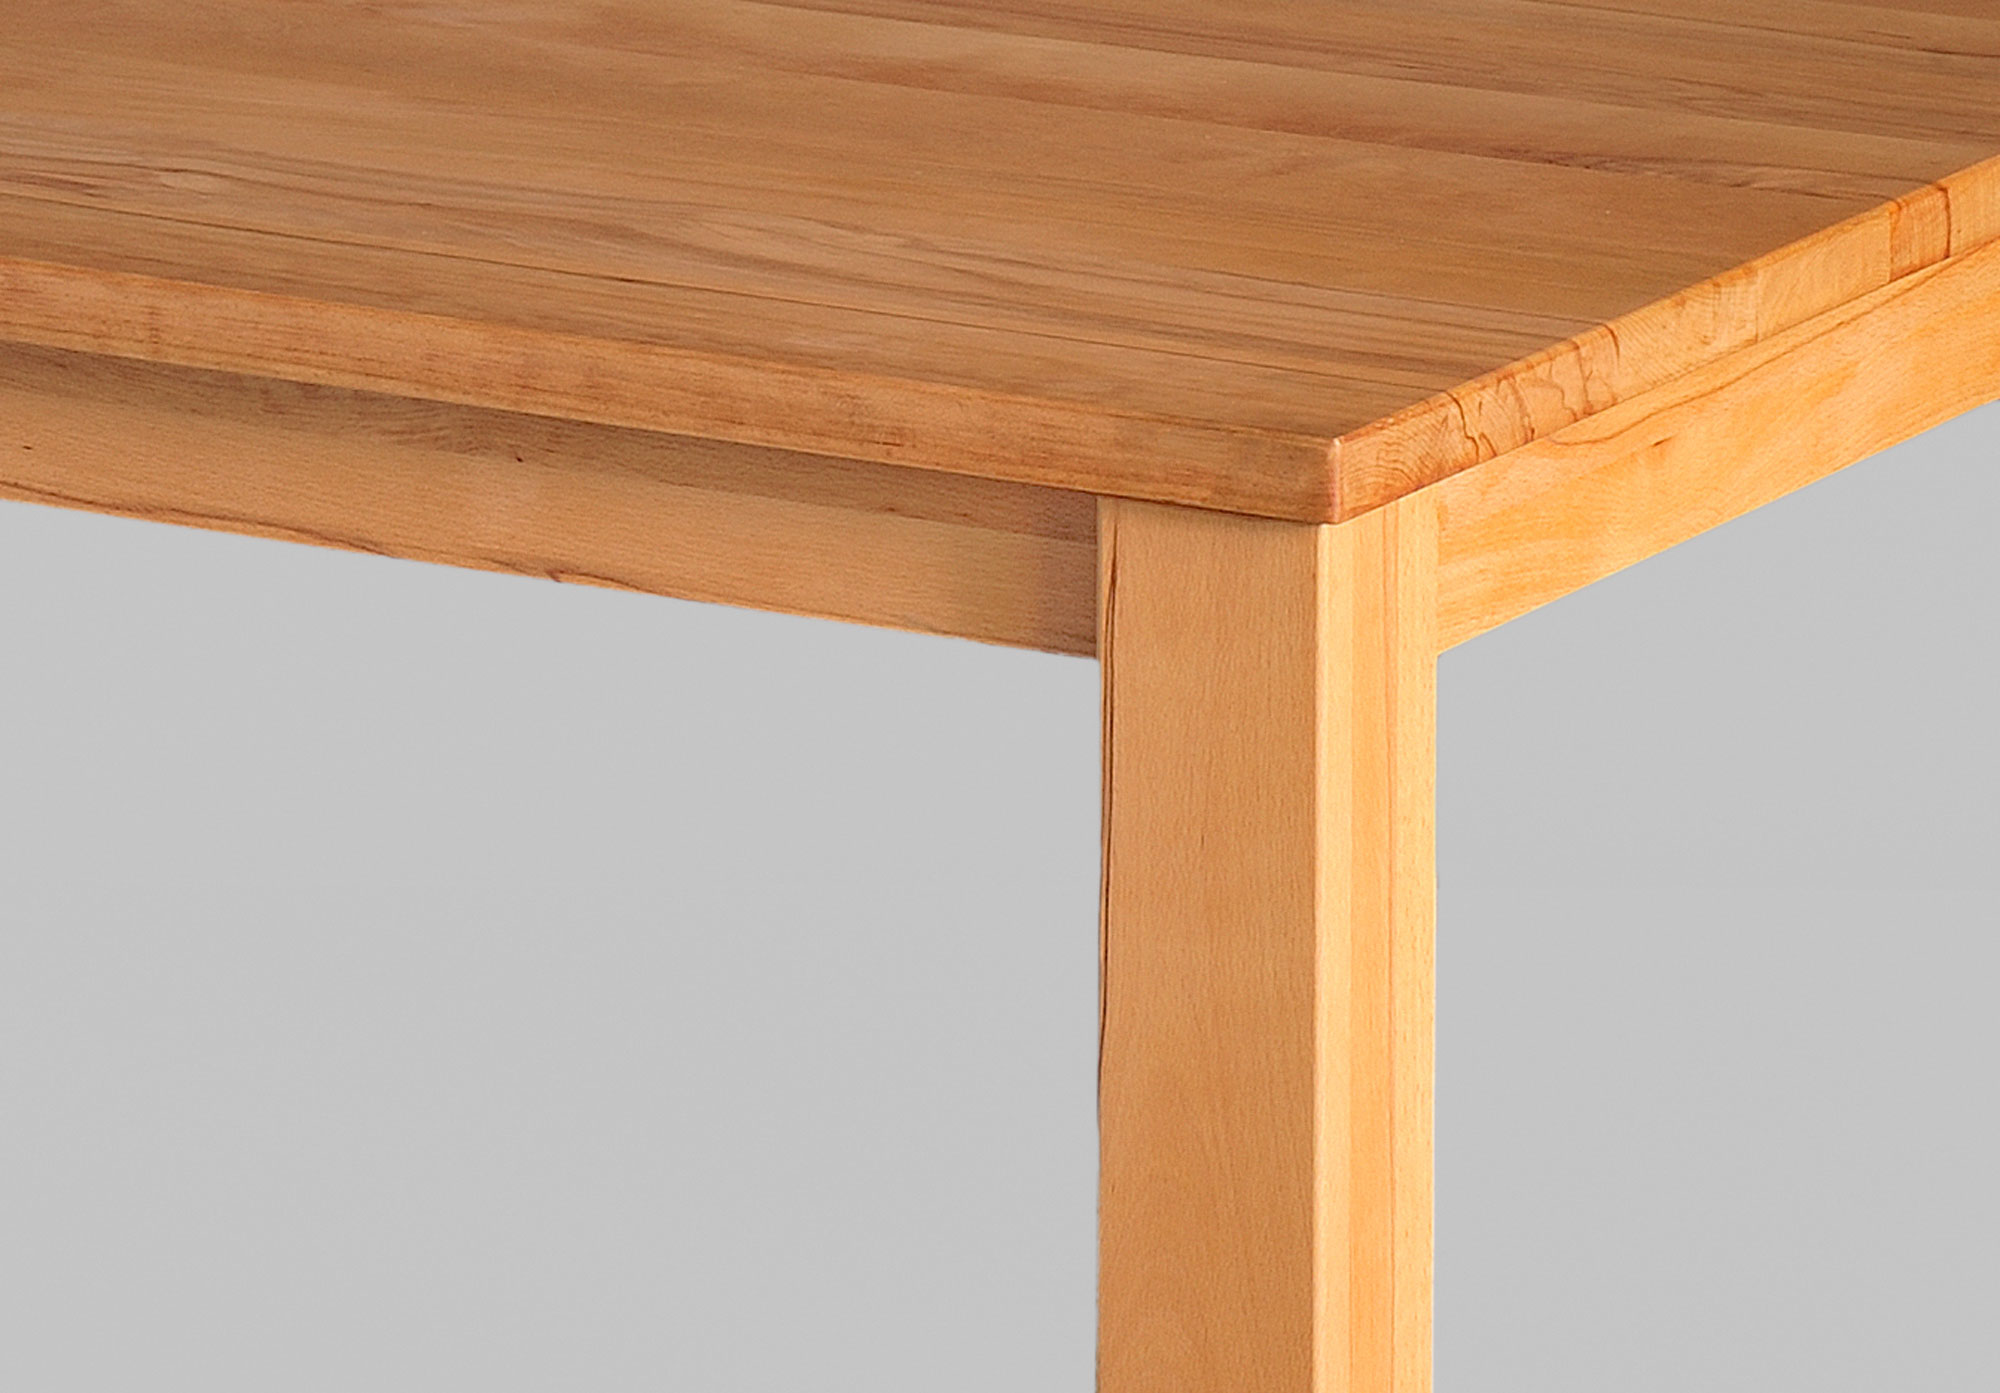 Tailor-Made Wood Table FORTE 3 B9X9 f3b9EKBU1660cutA custom made in solid wood by vitamin design